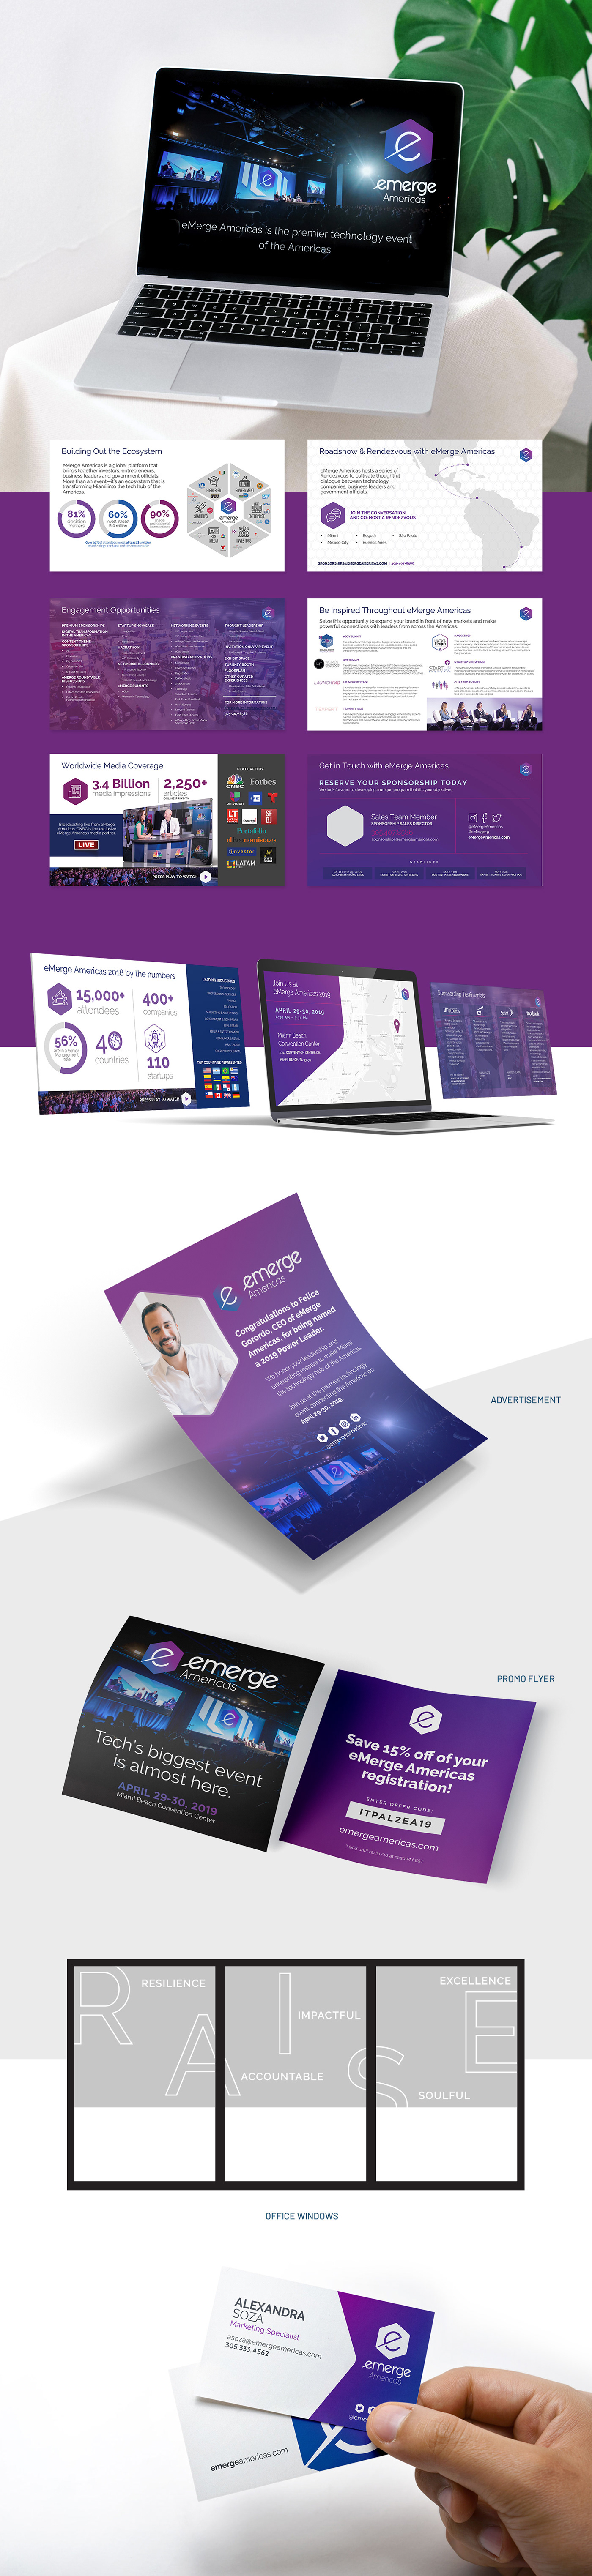 advertisement Collateral conference deck emerge flyer presentation promo tech